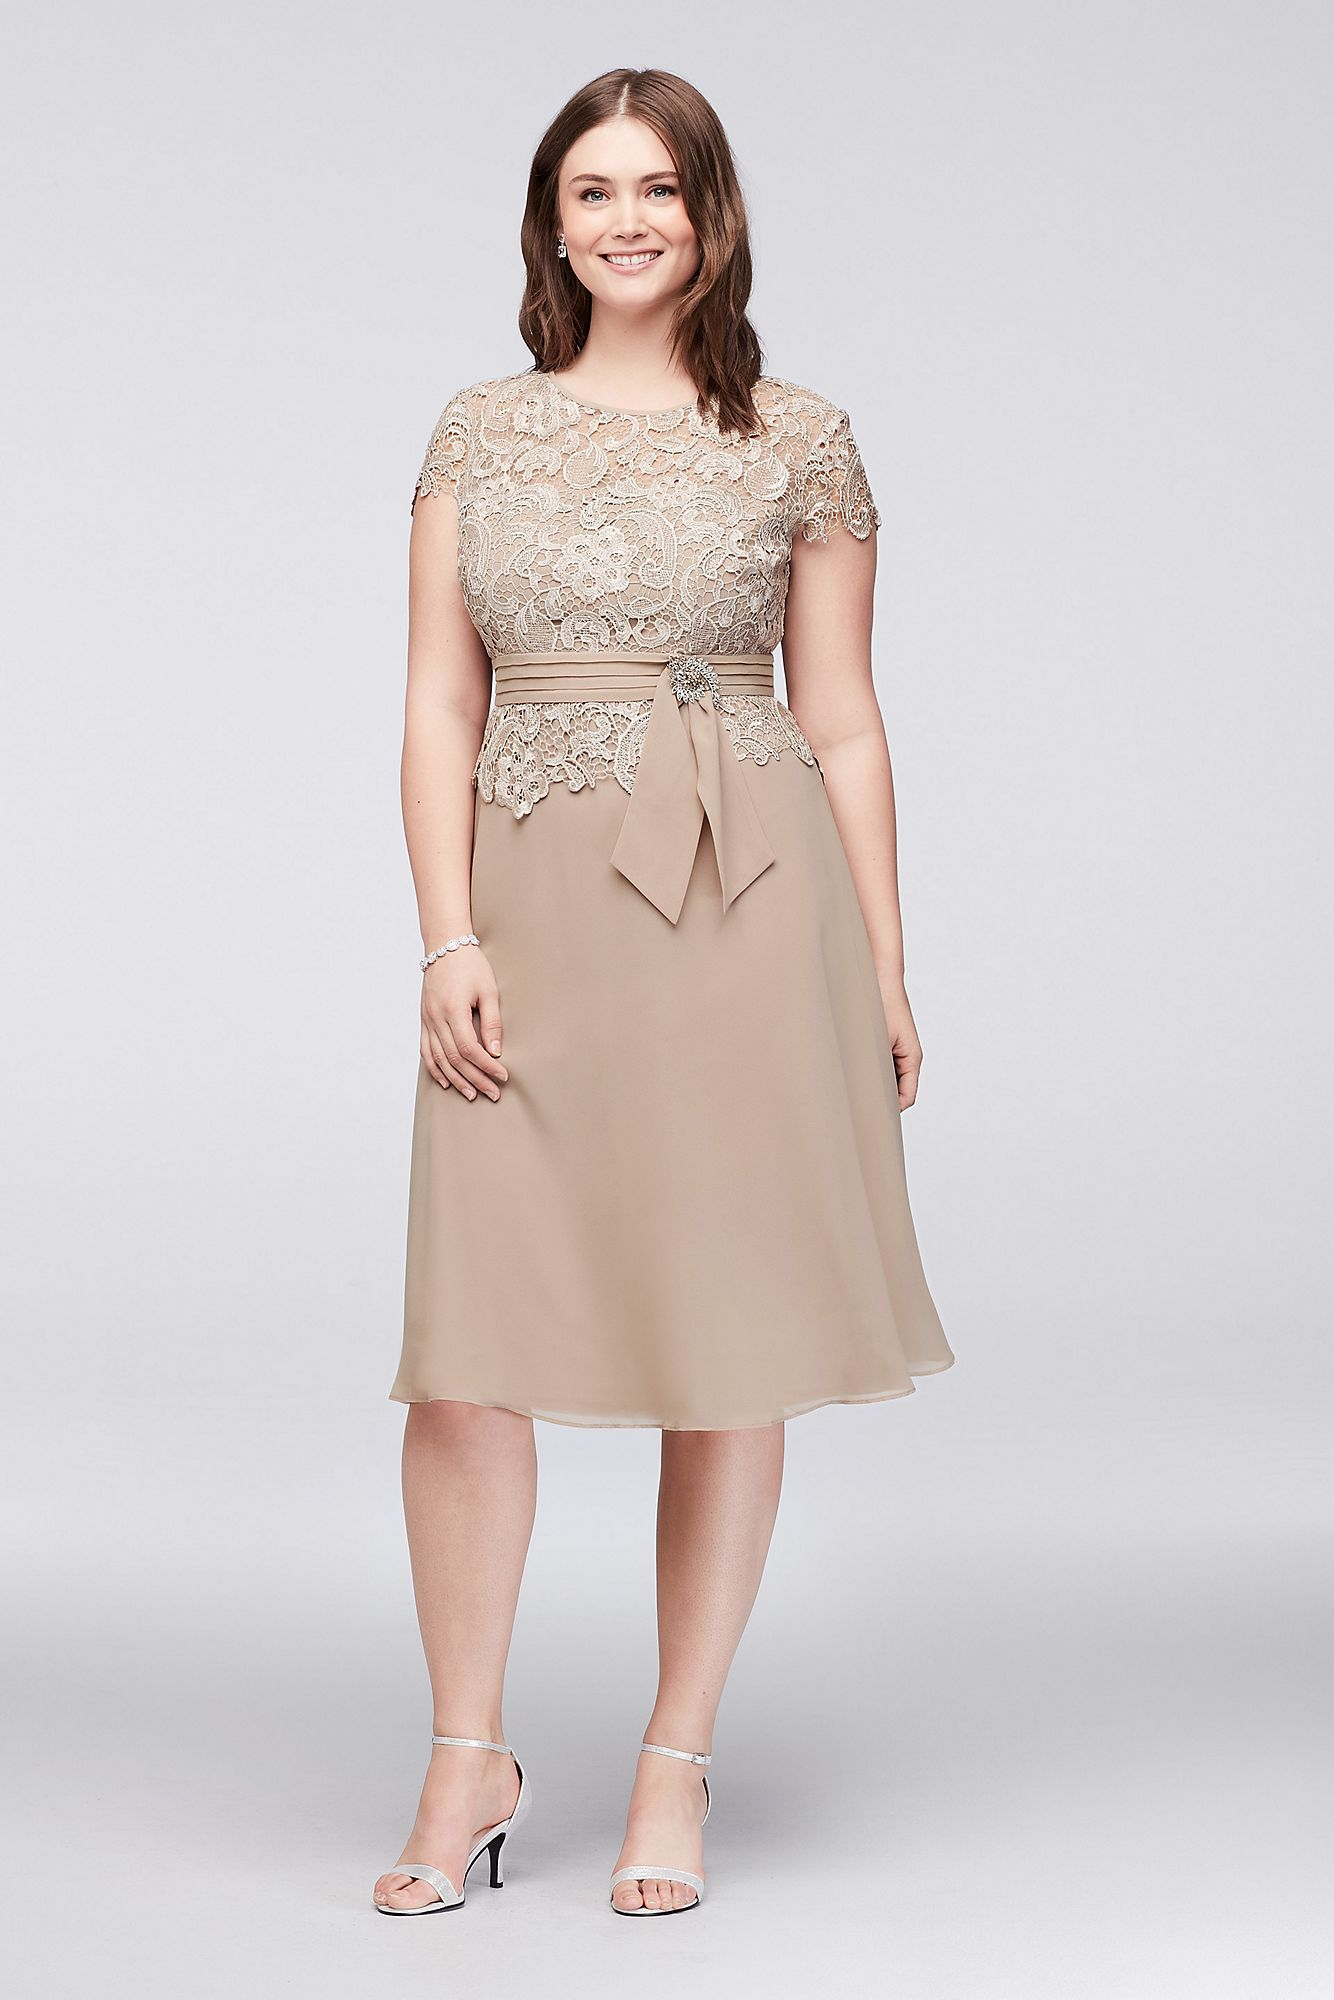 Plus Size Knee Length Short Sleeves Lace Mother of the Bride Dress ...